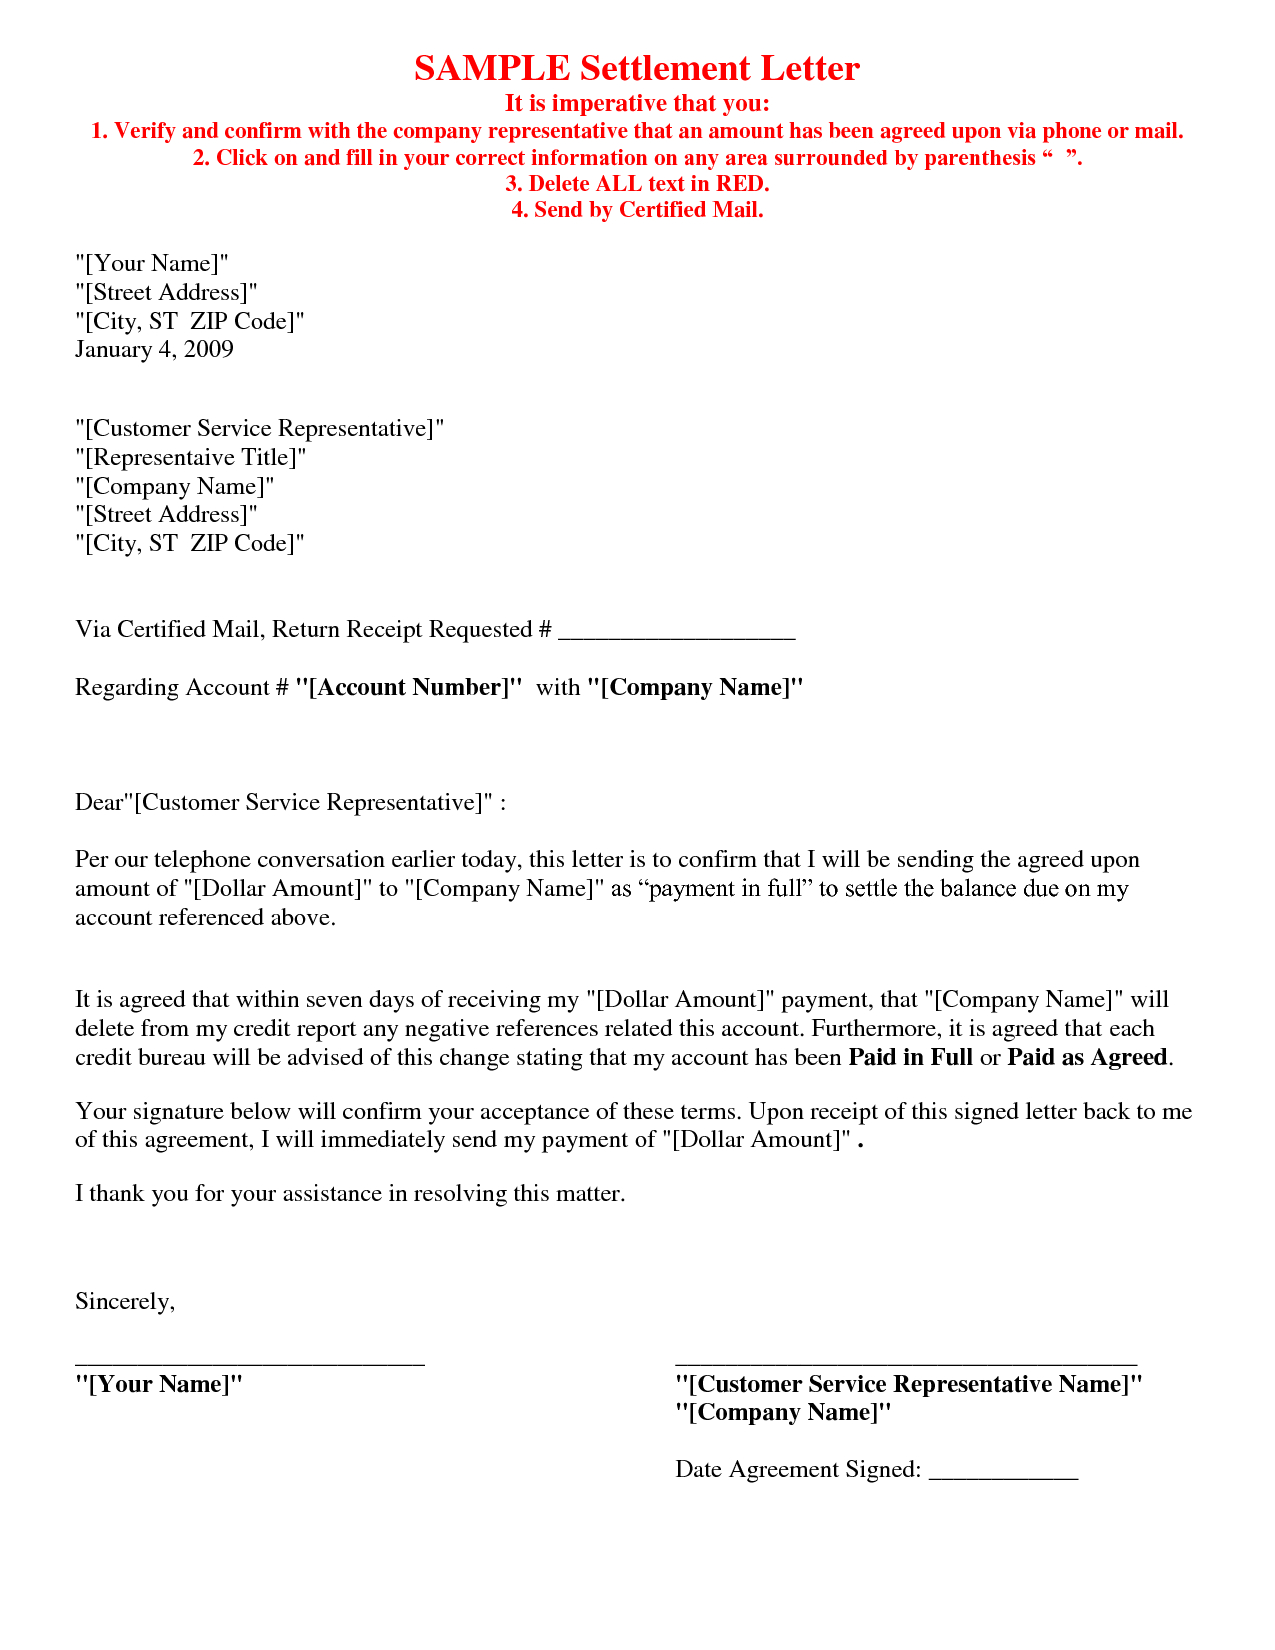 Full and Final Settlement Letter Template Car Accident - Sample Legal Letter Template